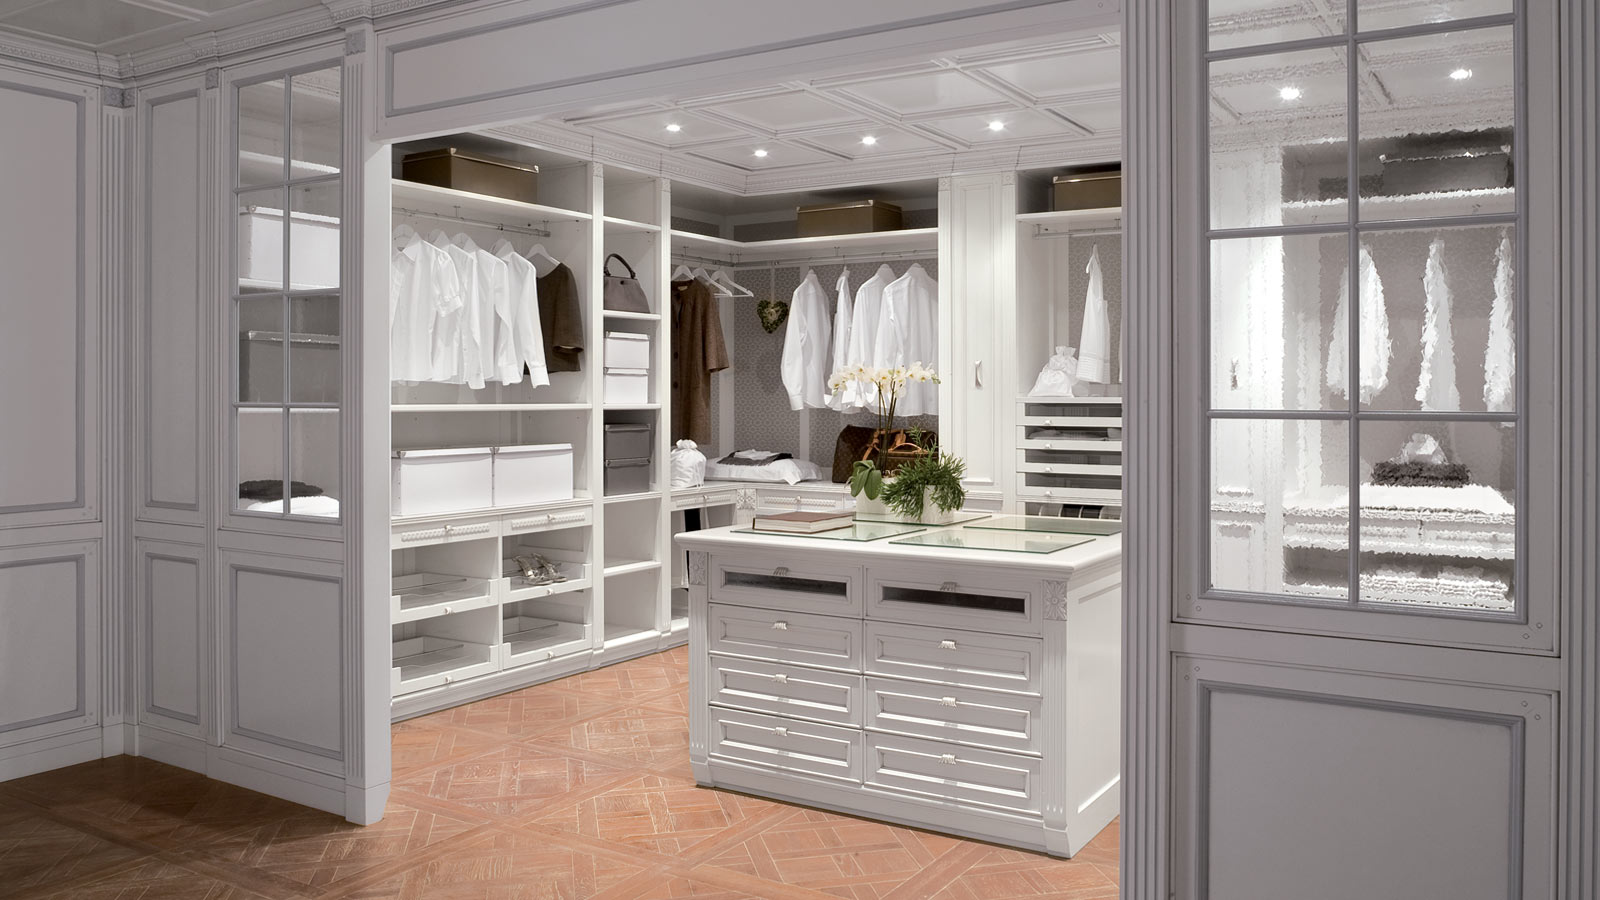 But Why Do Fitted Wardrobes Add Value To A Property?